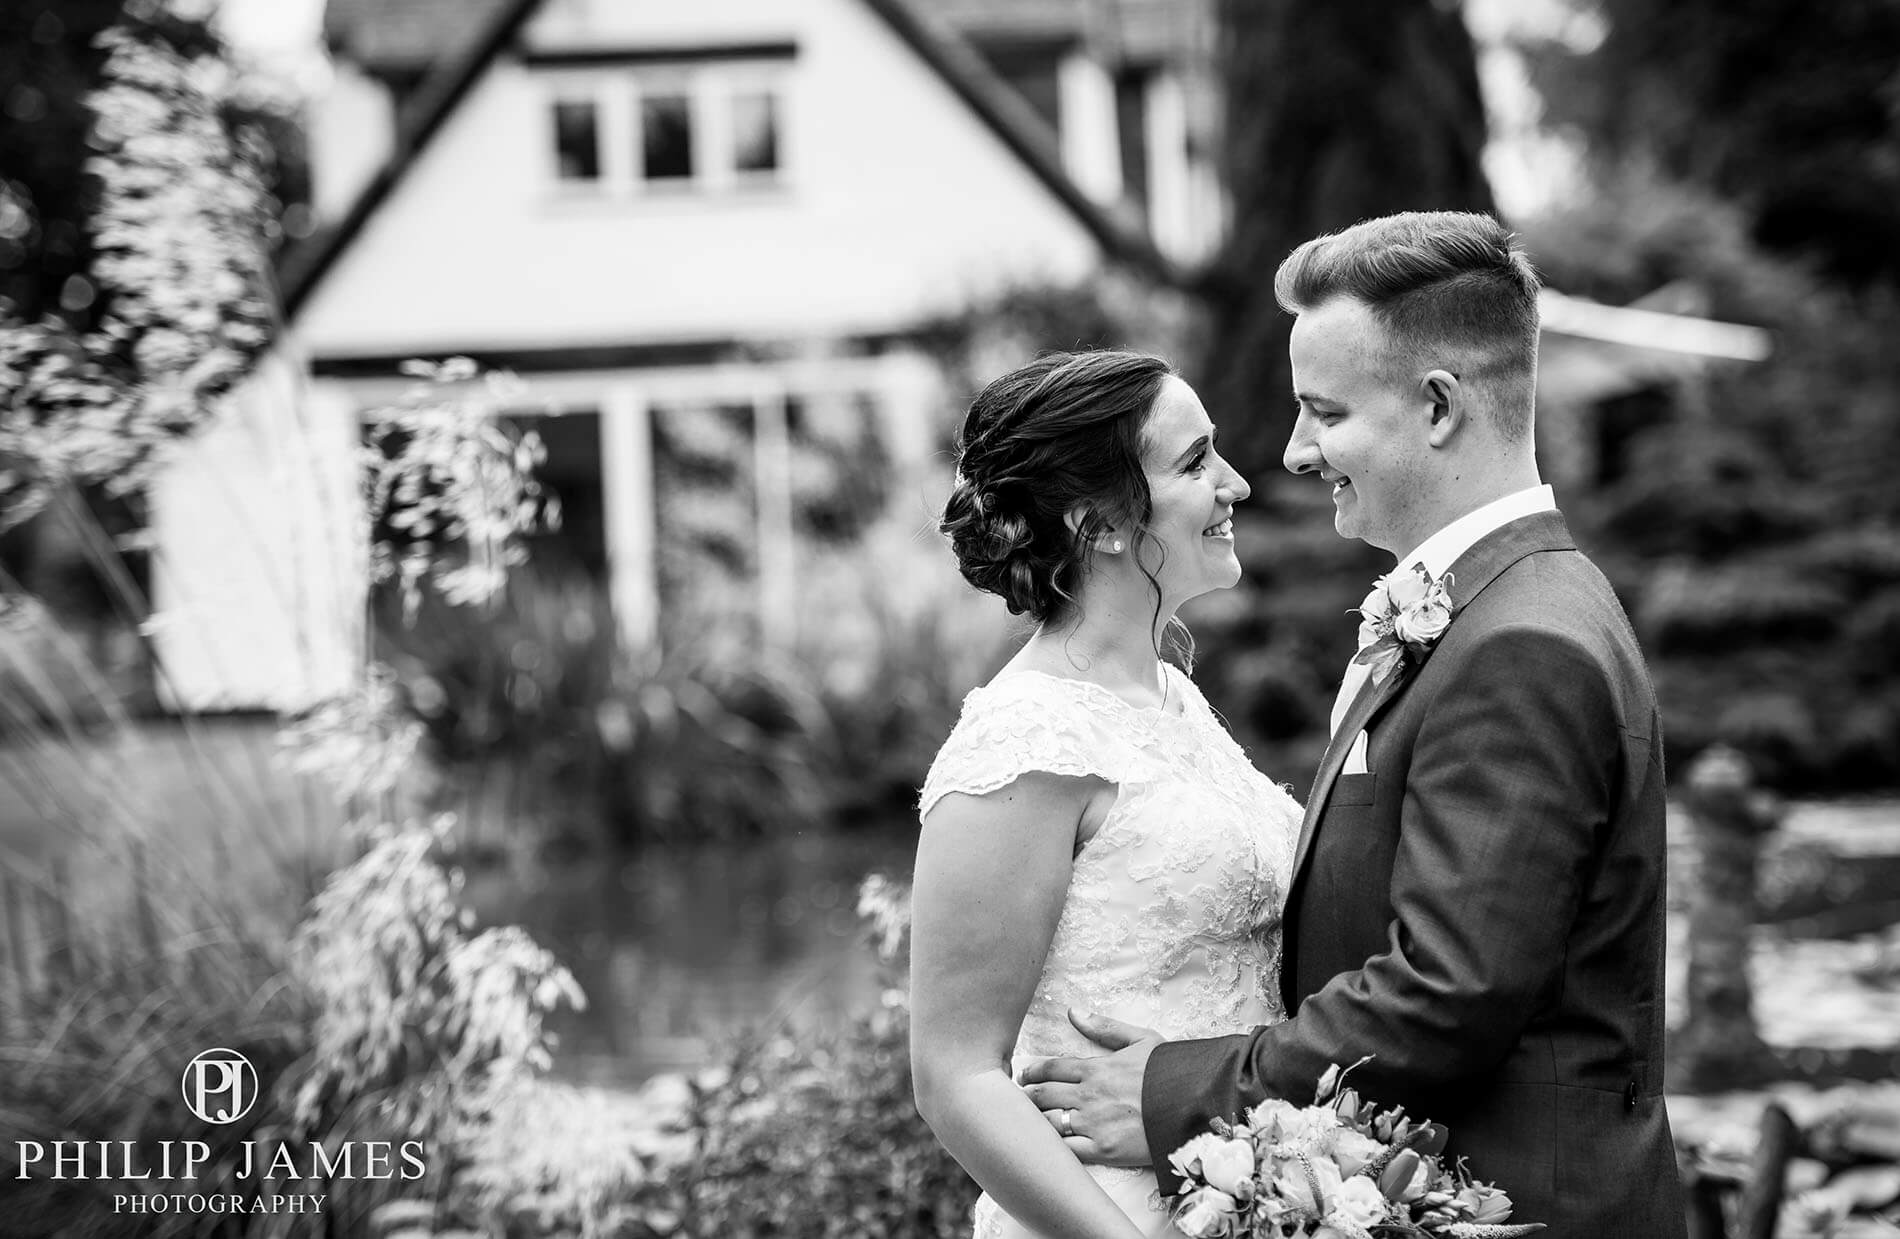 Birmingham Wedding Photographer - Philip James Photography based in Solihull (29 of 68)